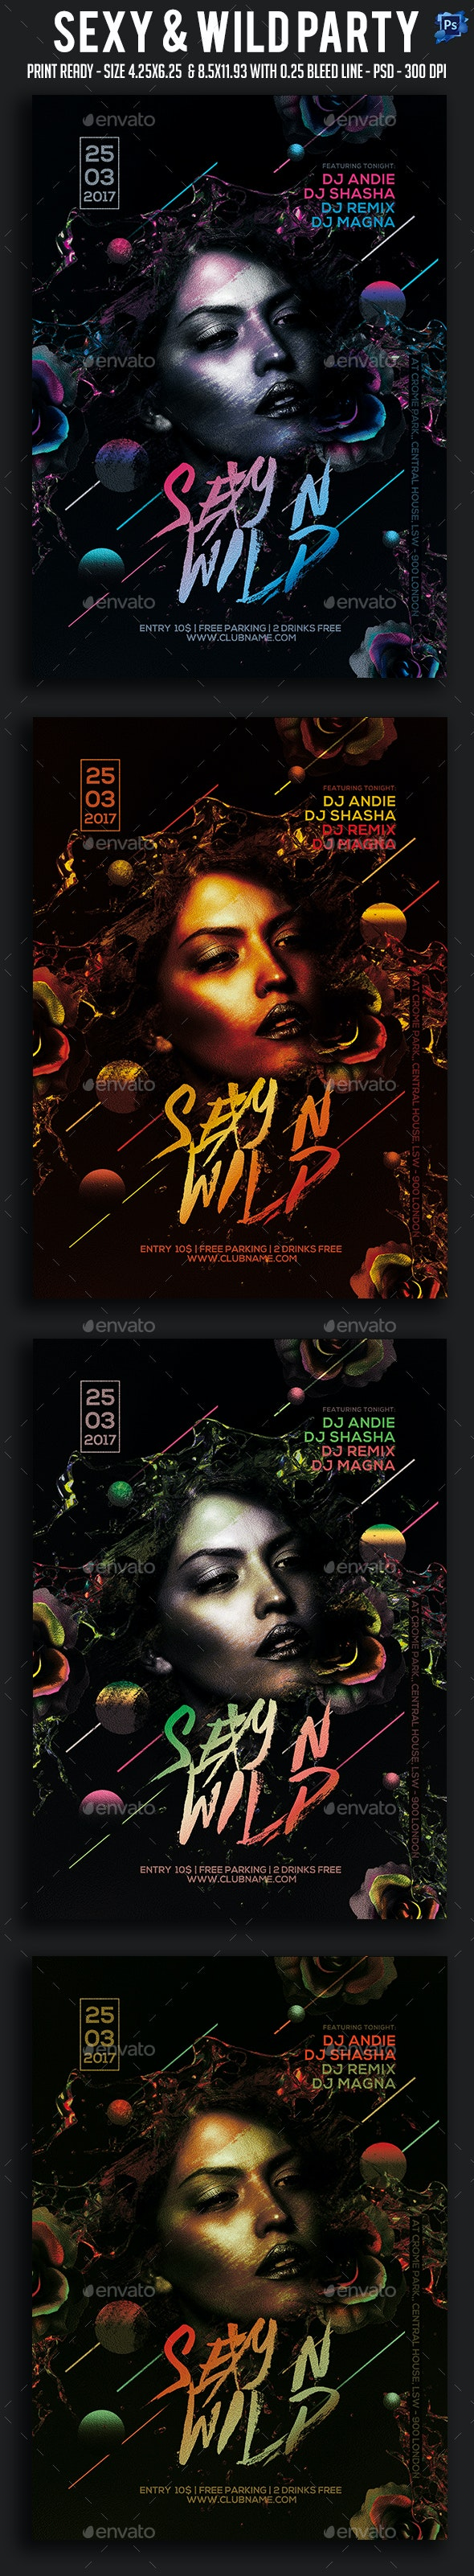 Sexy & Wild Party Flyer - Clubs & Parties Events